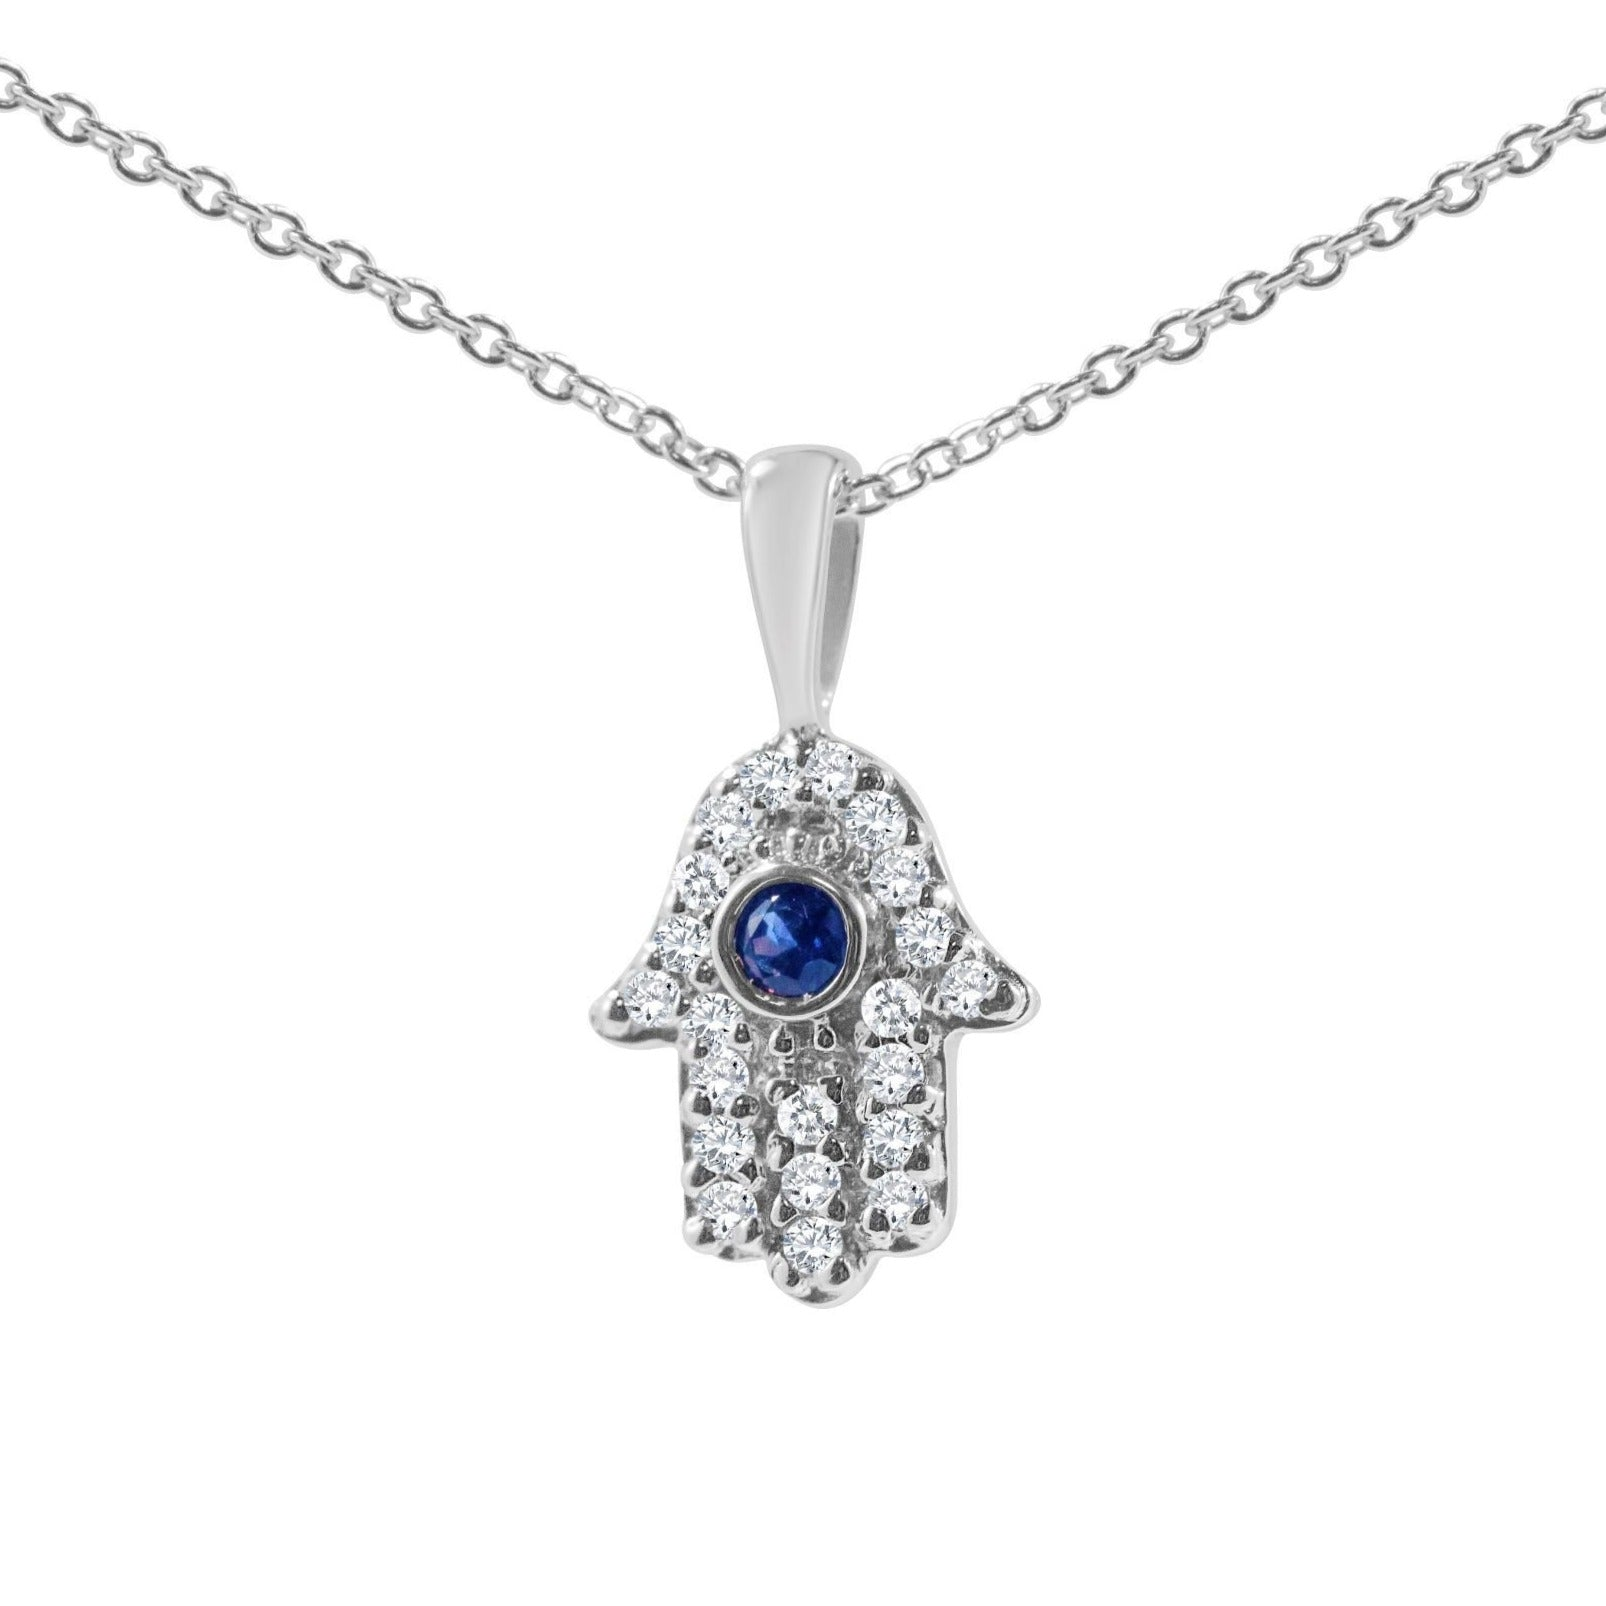 Small and Dainty Hamsa Diamond Necklace